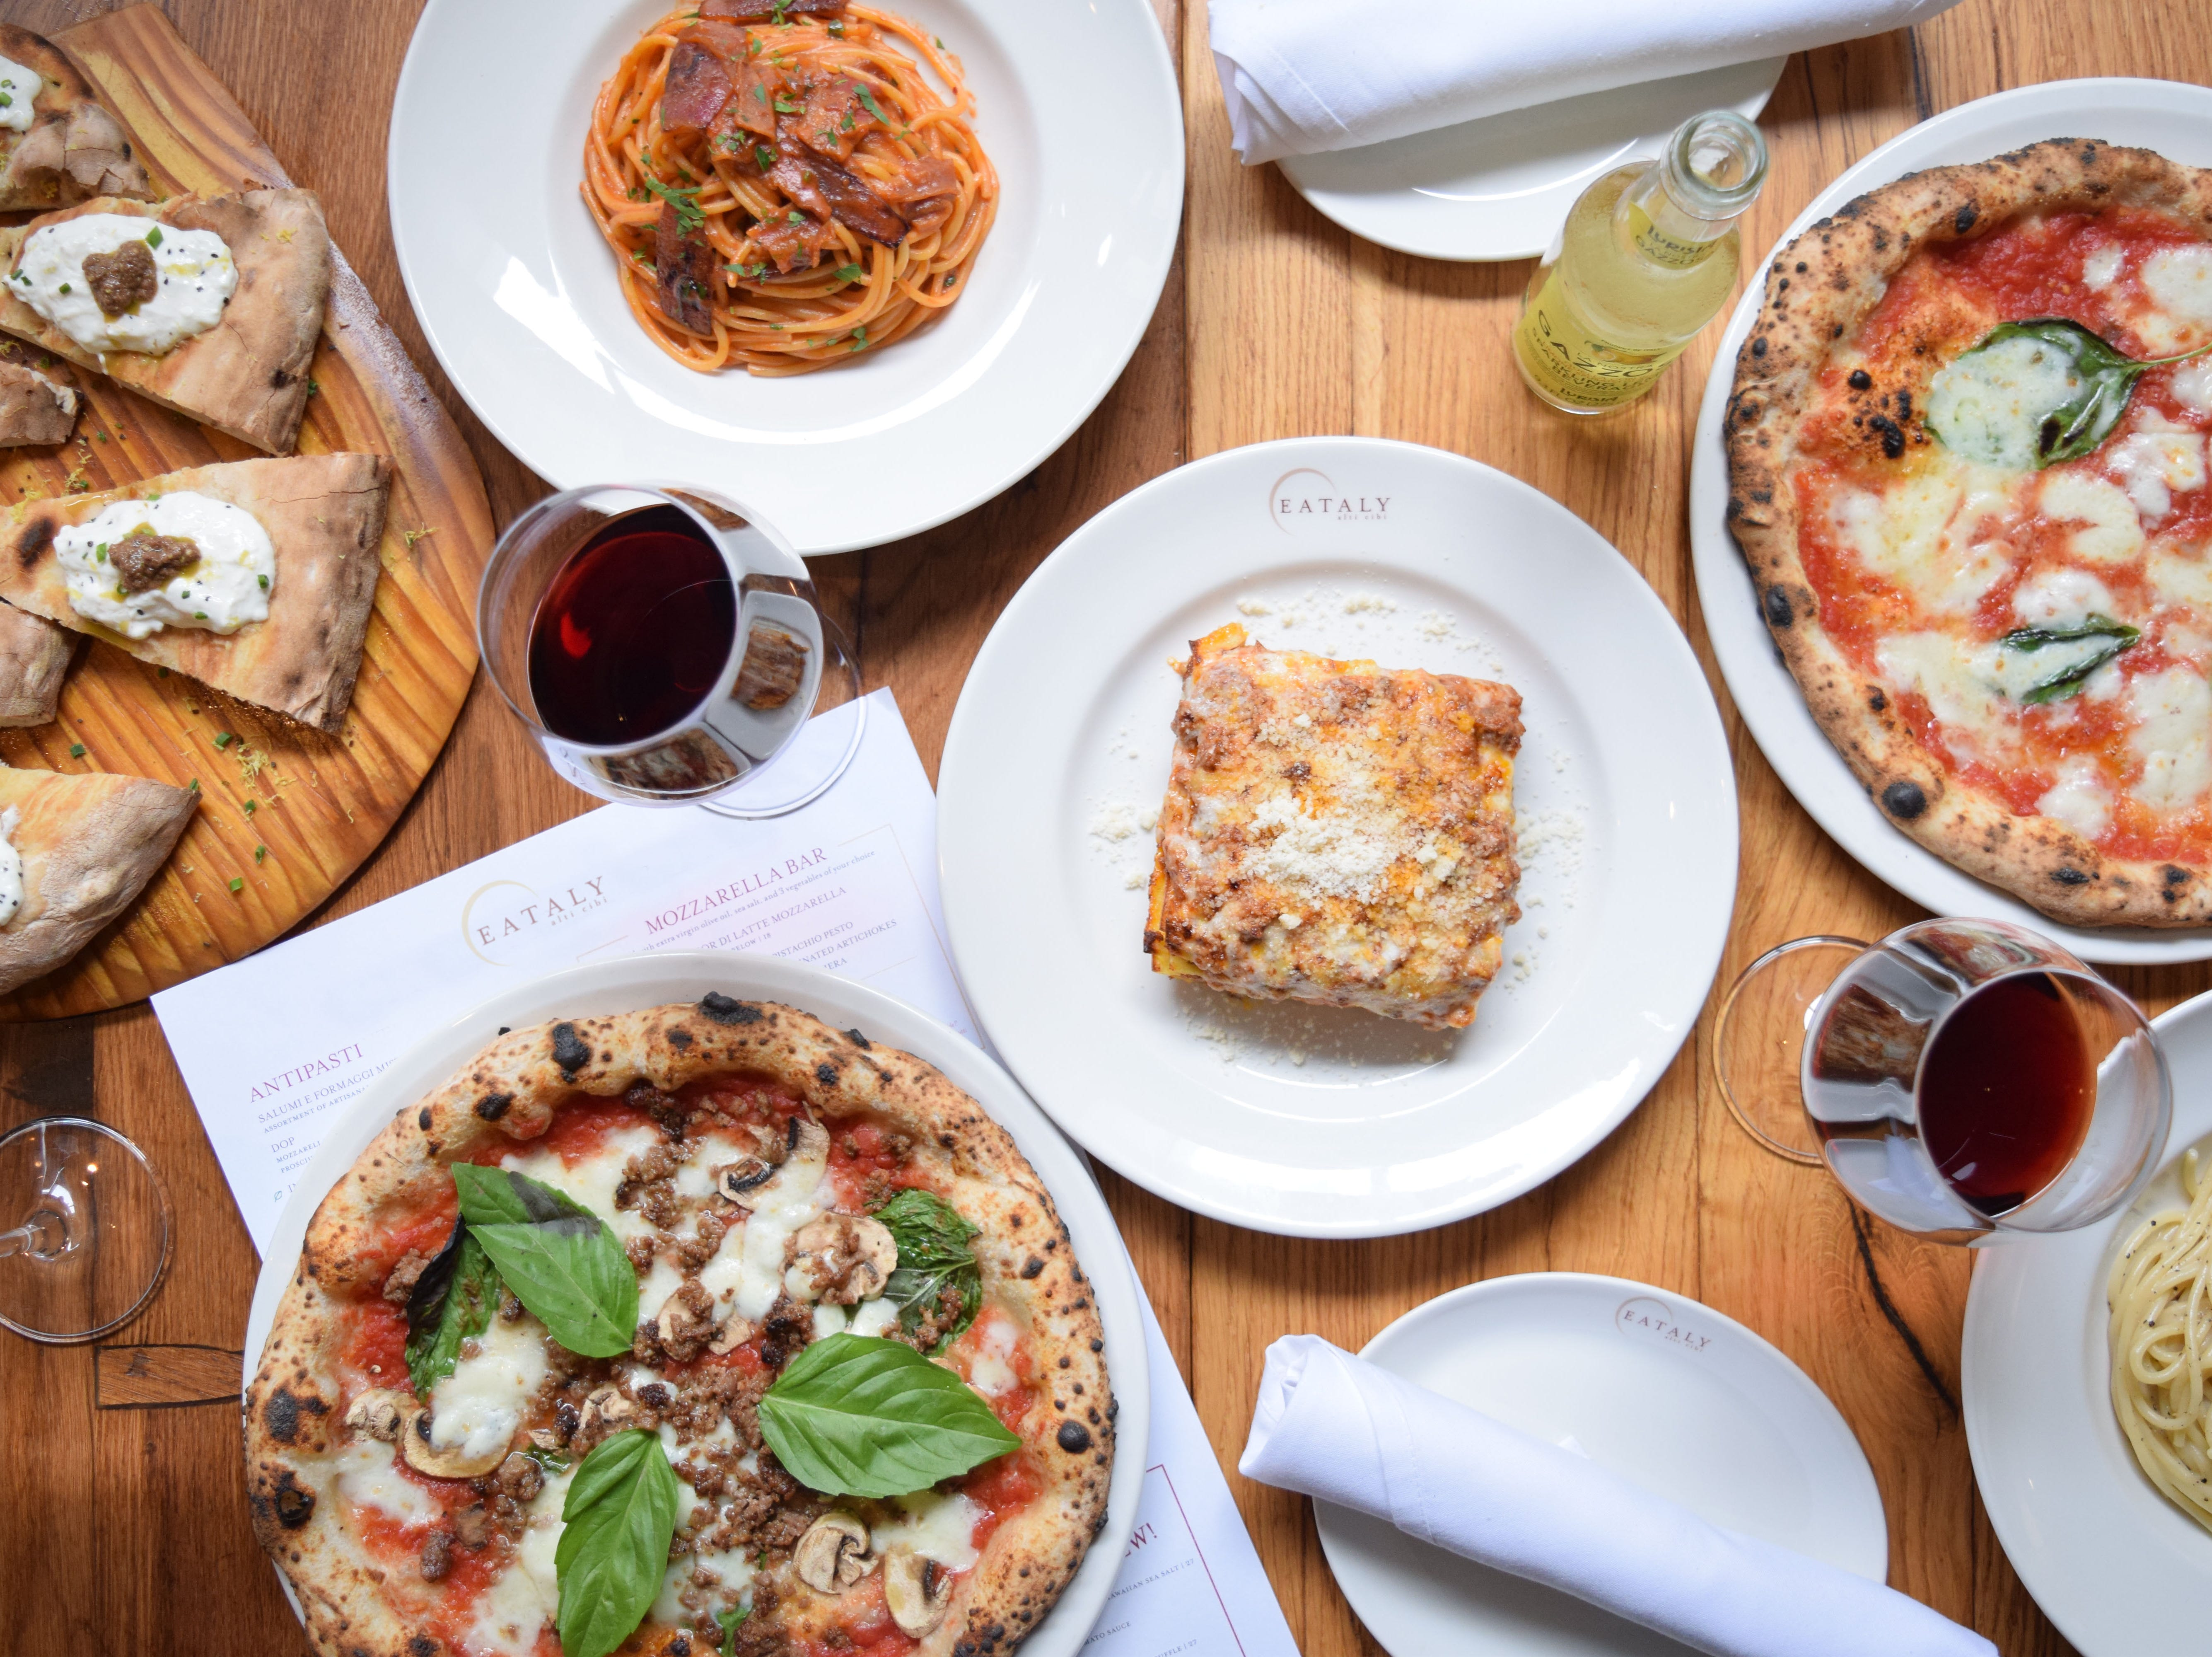 EATALY LAS VEGAS in the Park MGM. Pizzas and pastas.